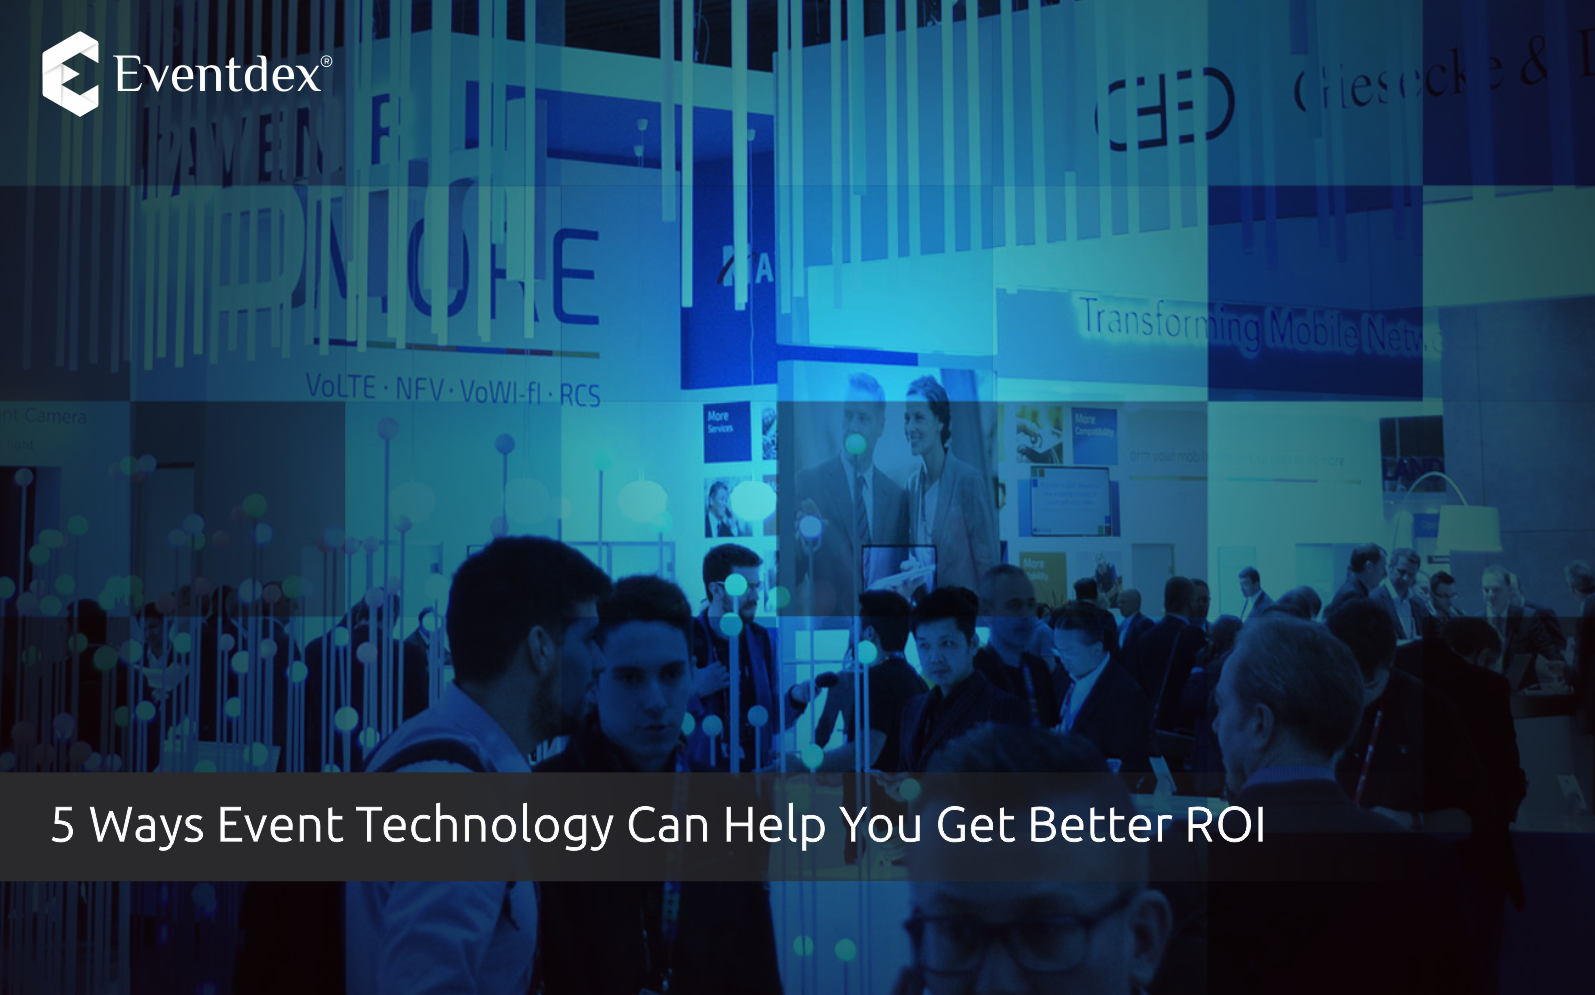 5 Ways Event Technology Can Help You Get Better ROI | Eventdex Blog